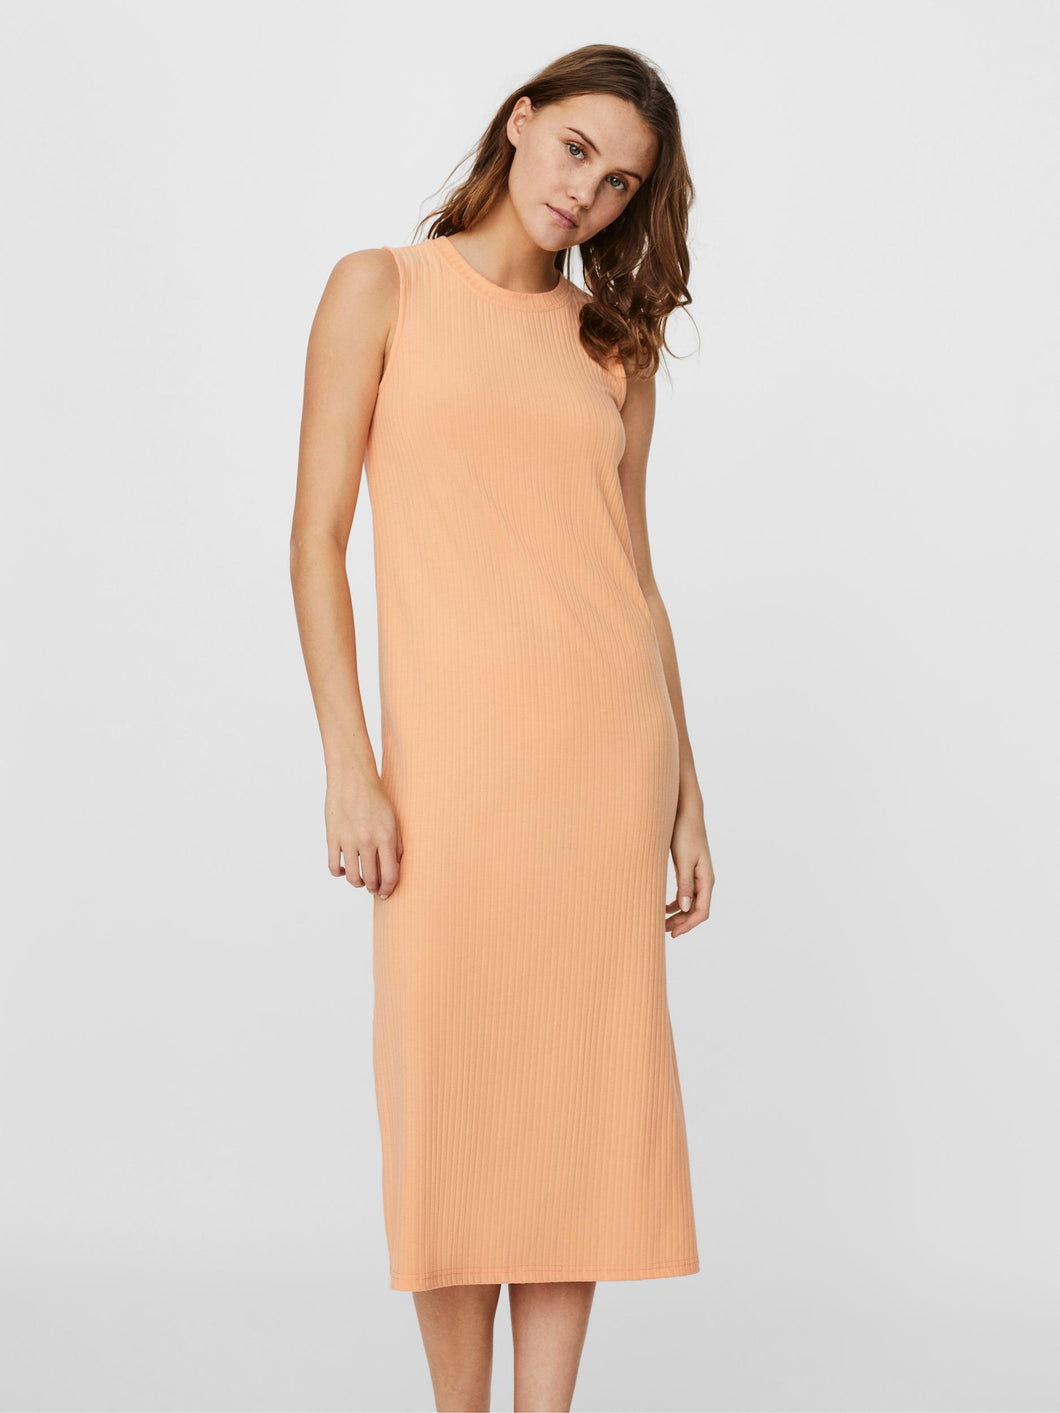 Vero Moda Rib Dress - Peach